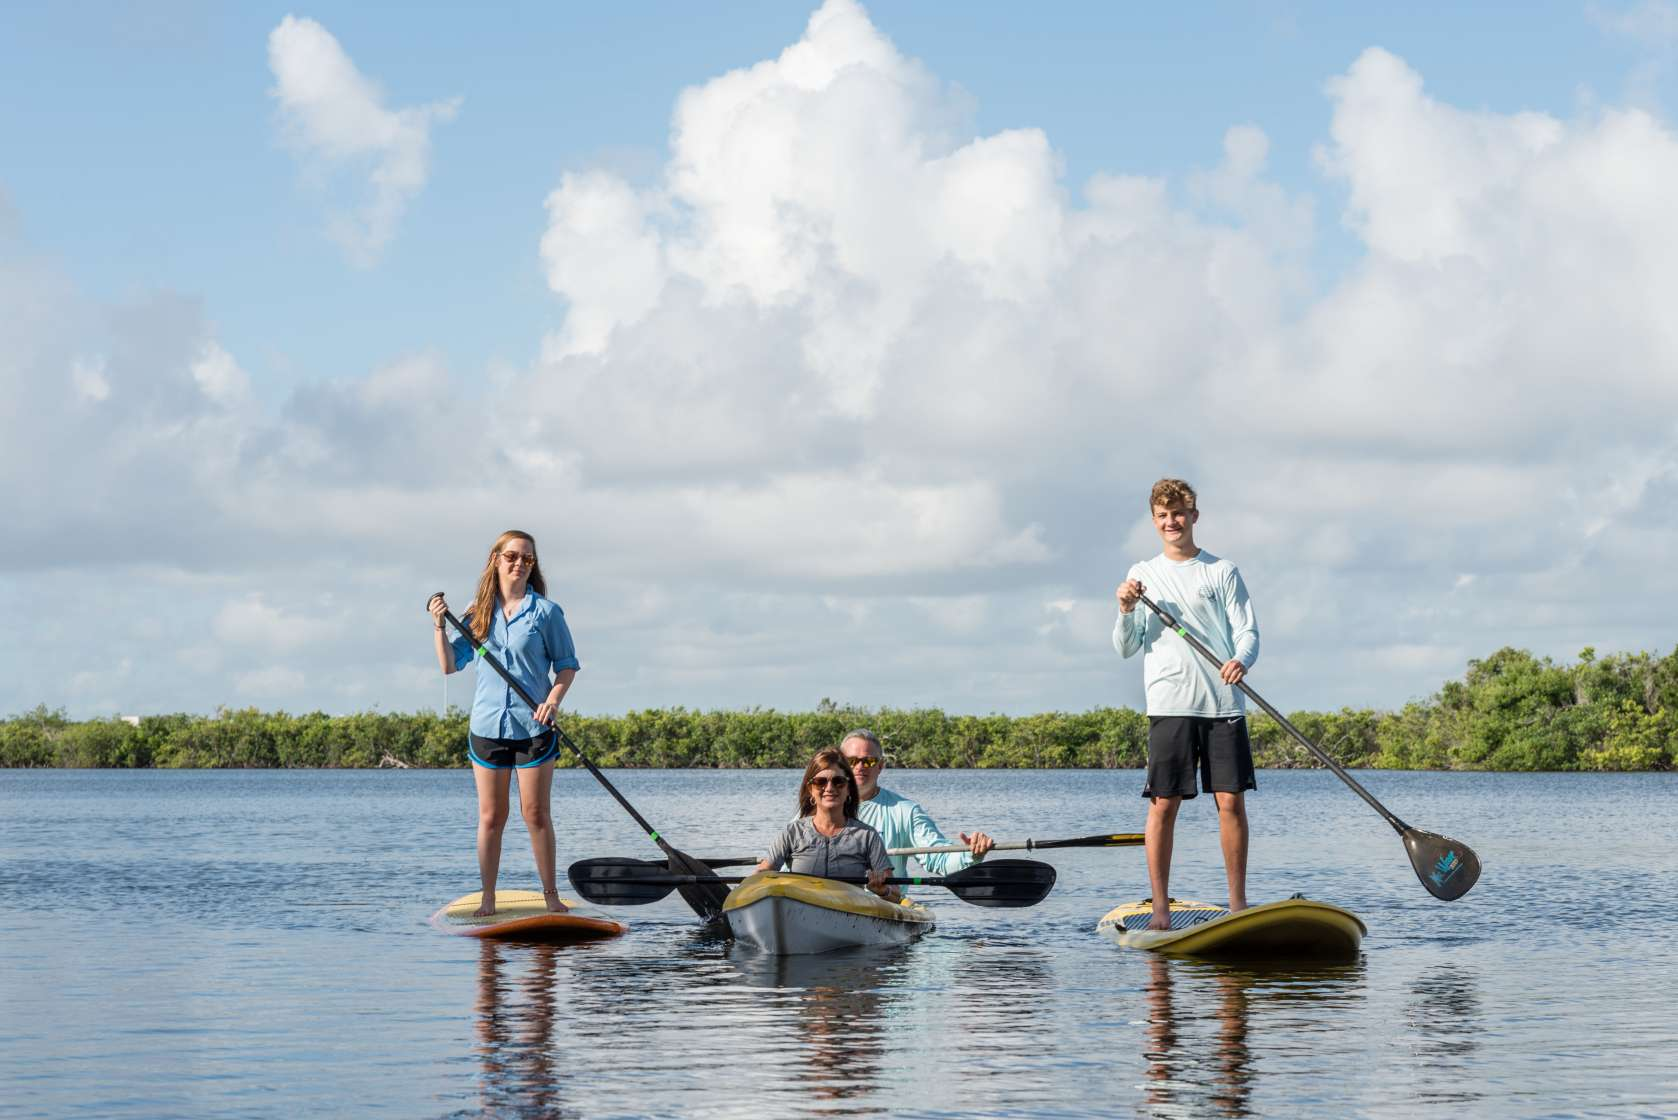 The Cinca family is shown enjoying a day kayaking and paddle boarding on the water.